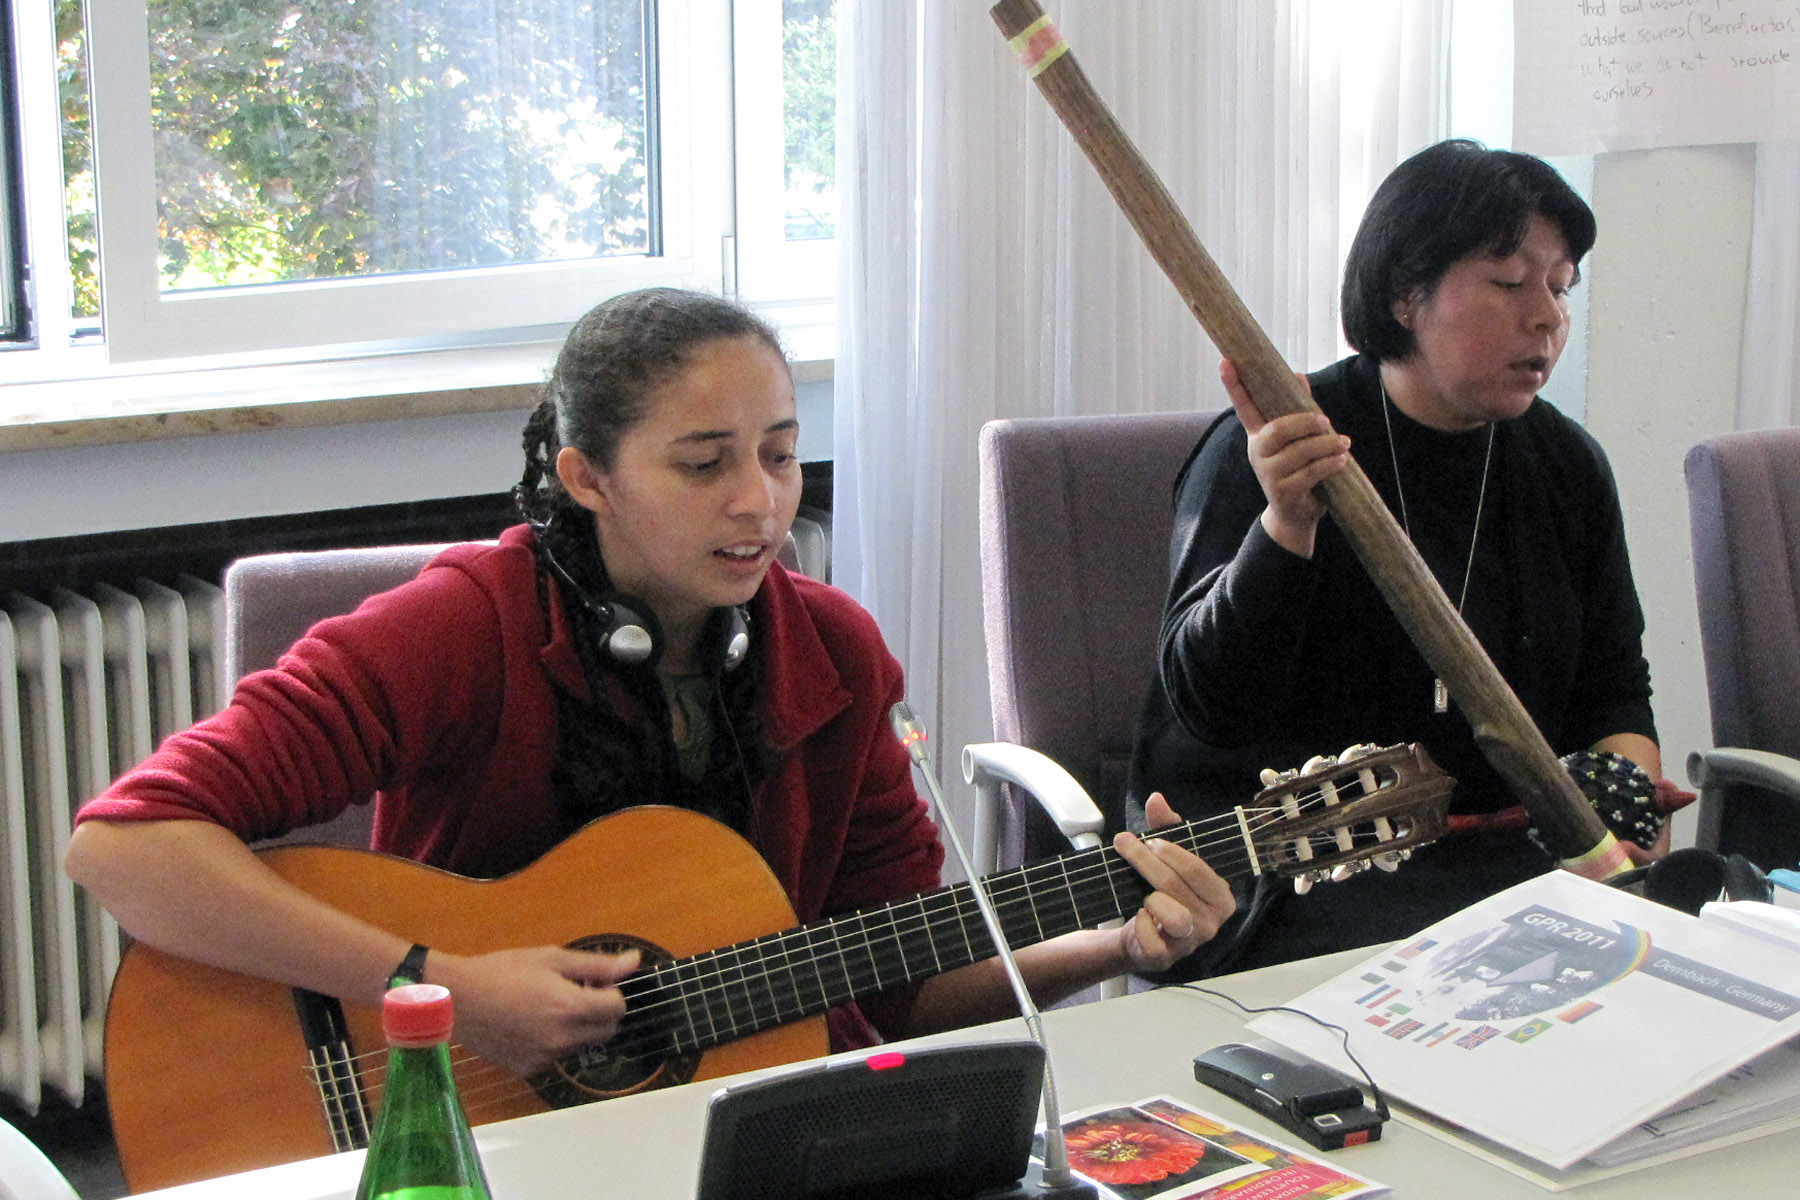 Sister Magna (left) and Sister Elvia (right) perform a song together during the 2011 GPR.